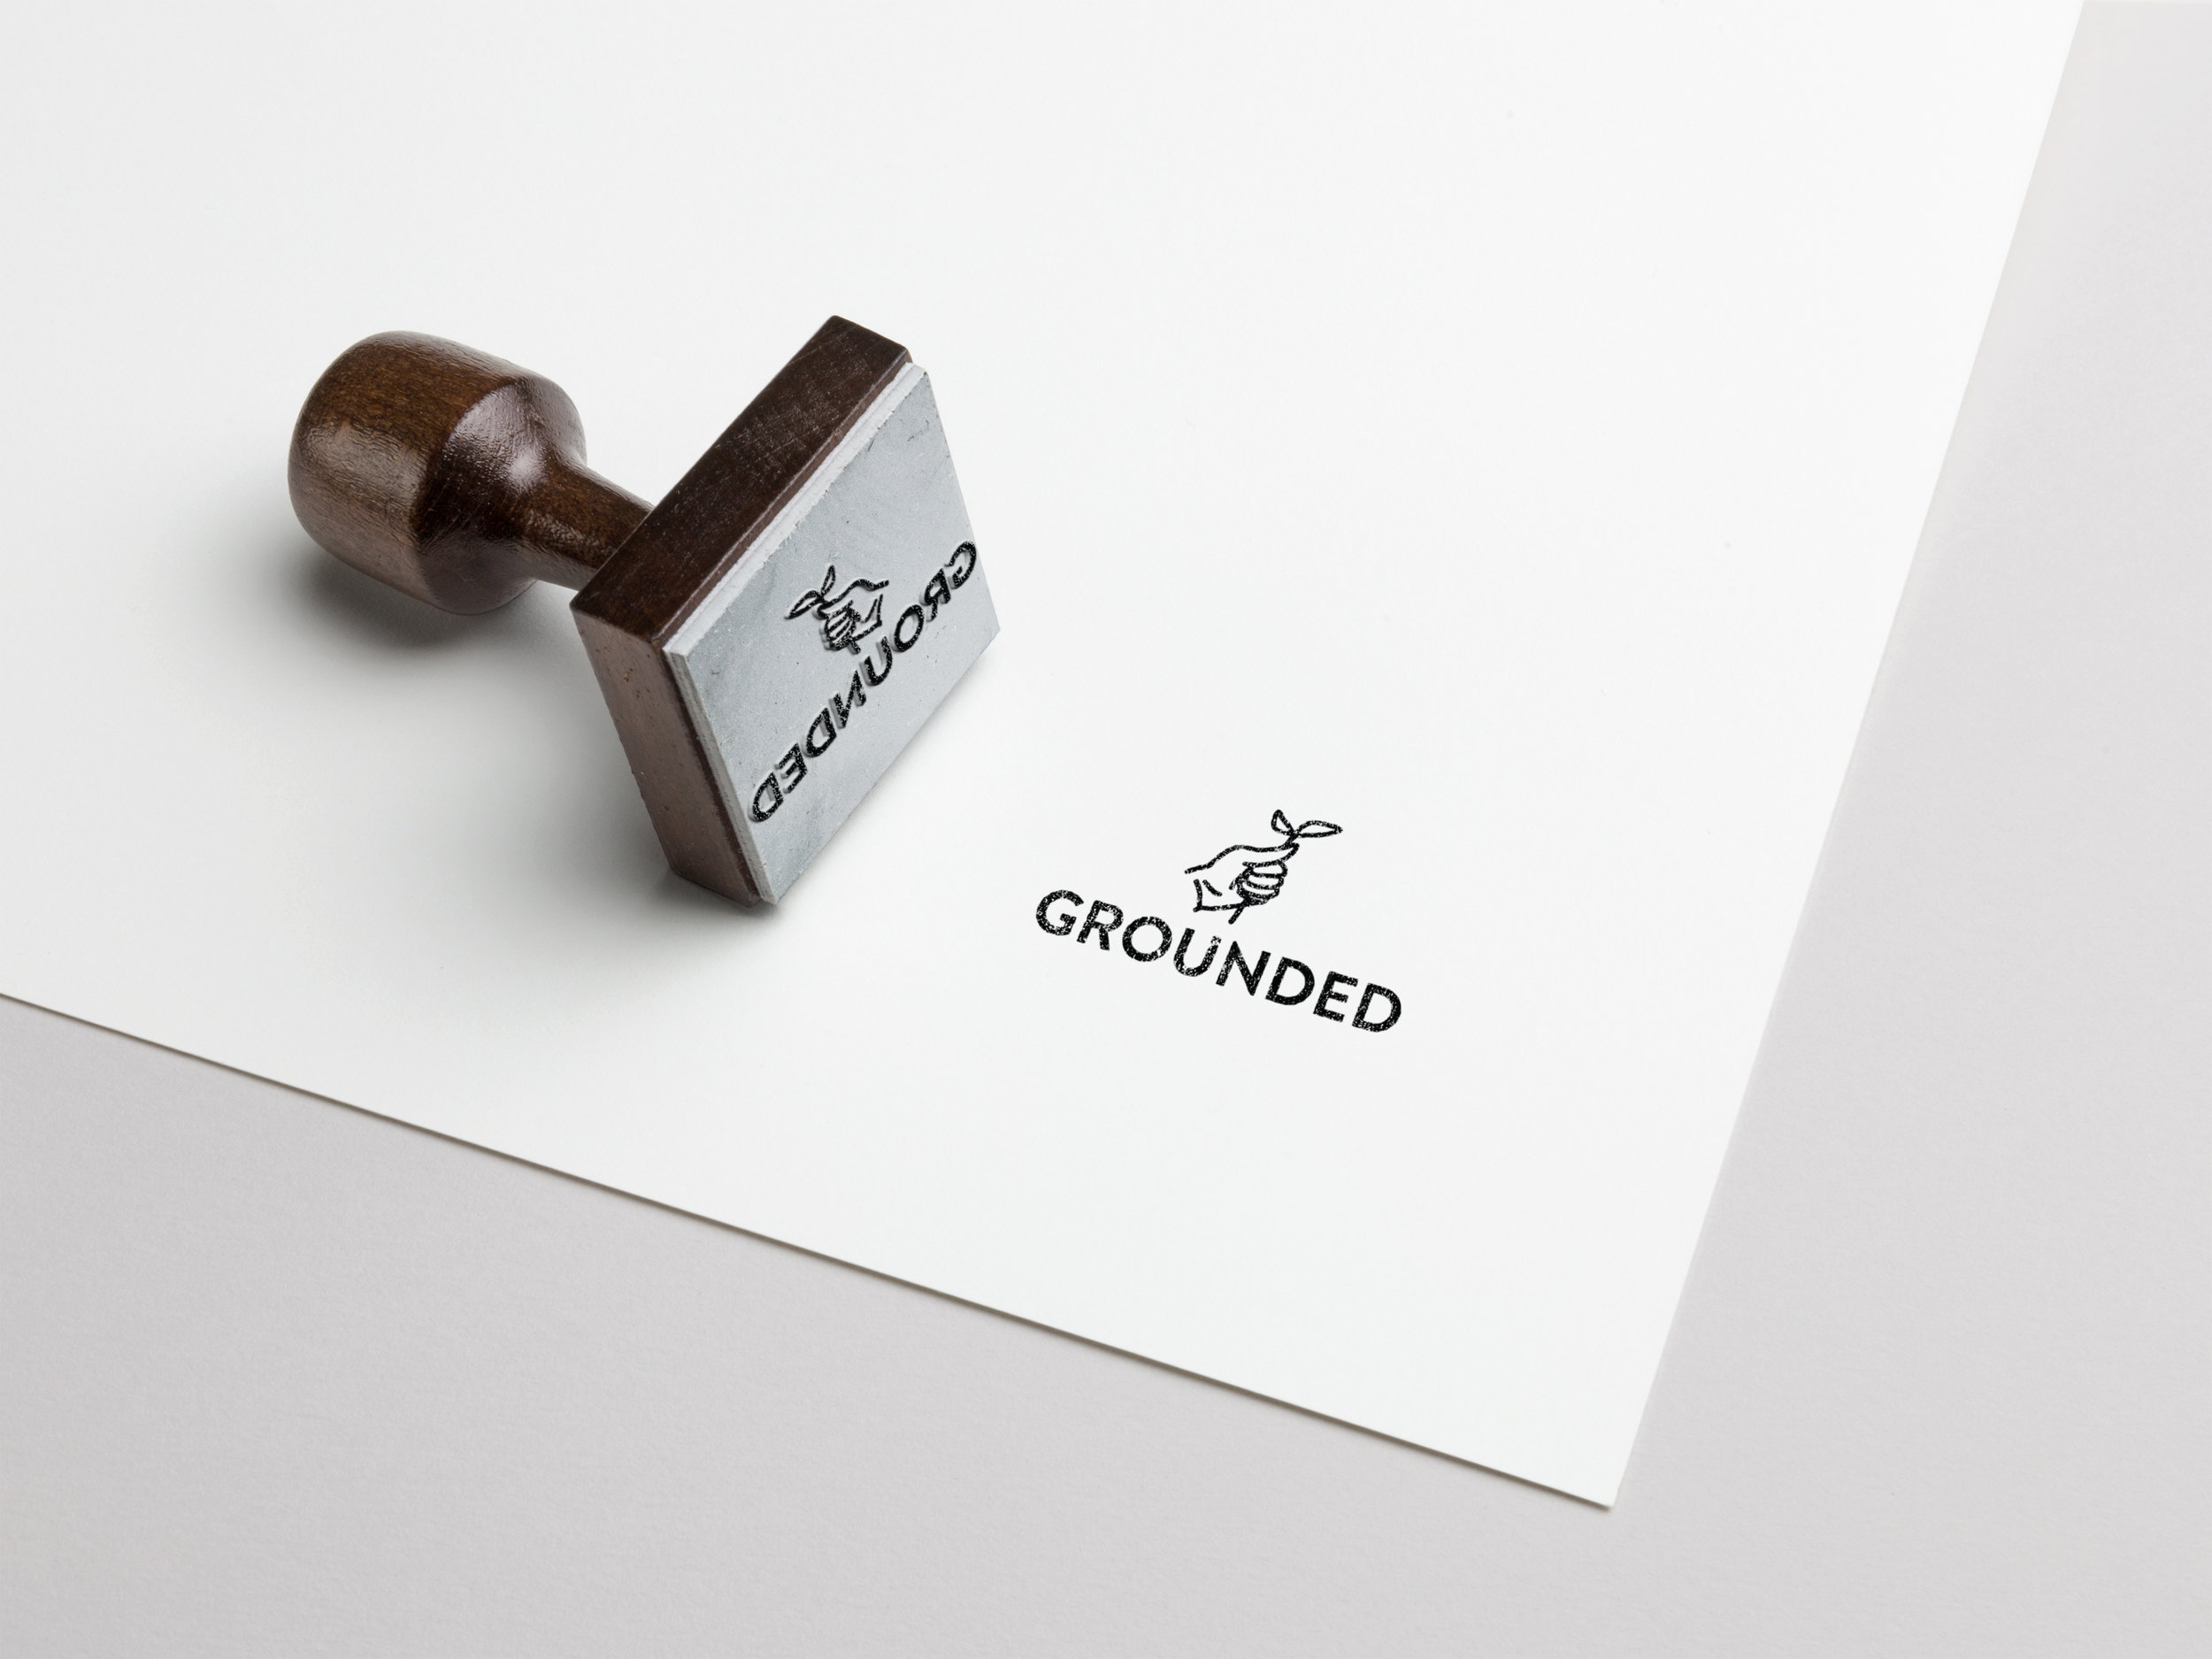 Grounded-Stamp-Mockup.jpg